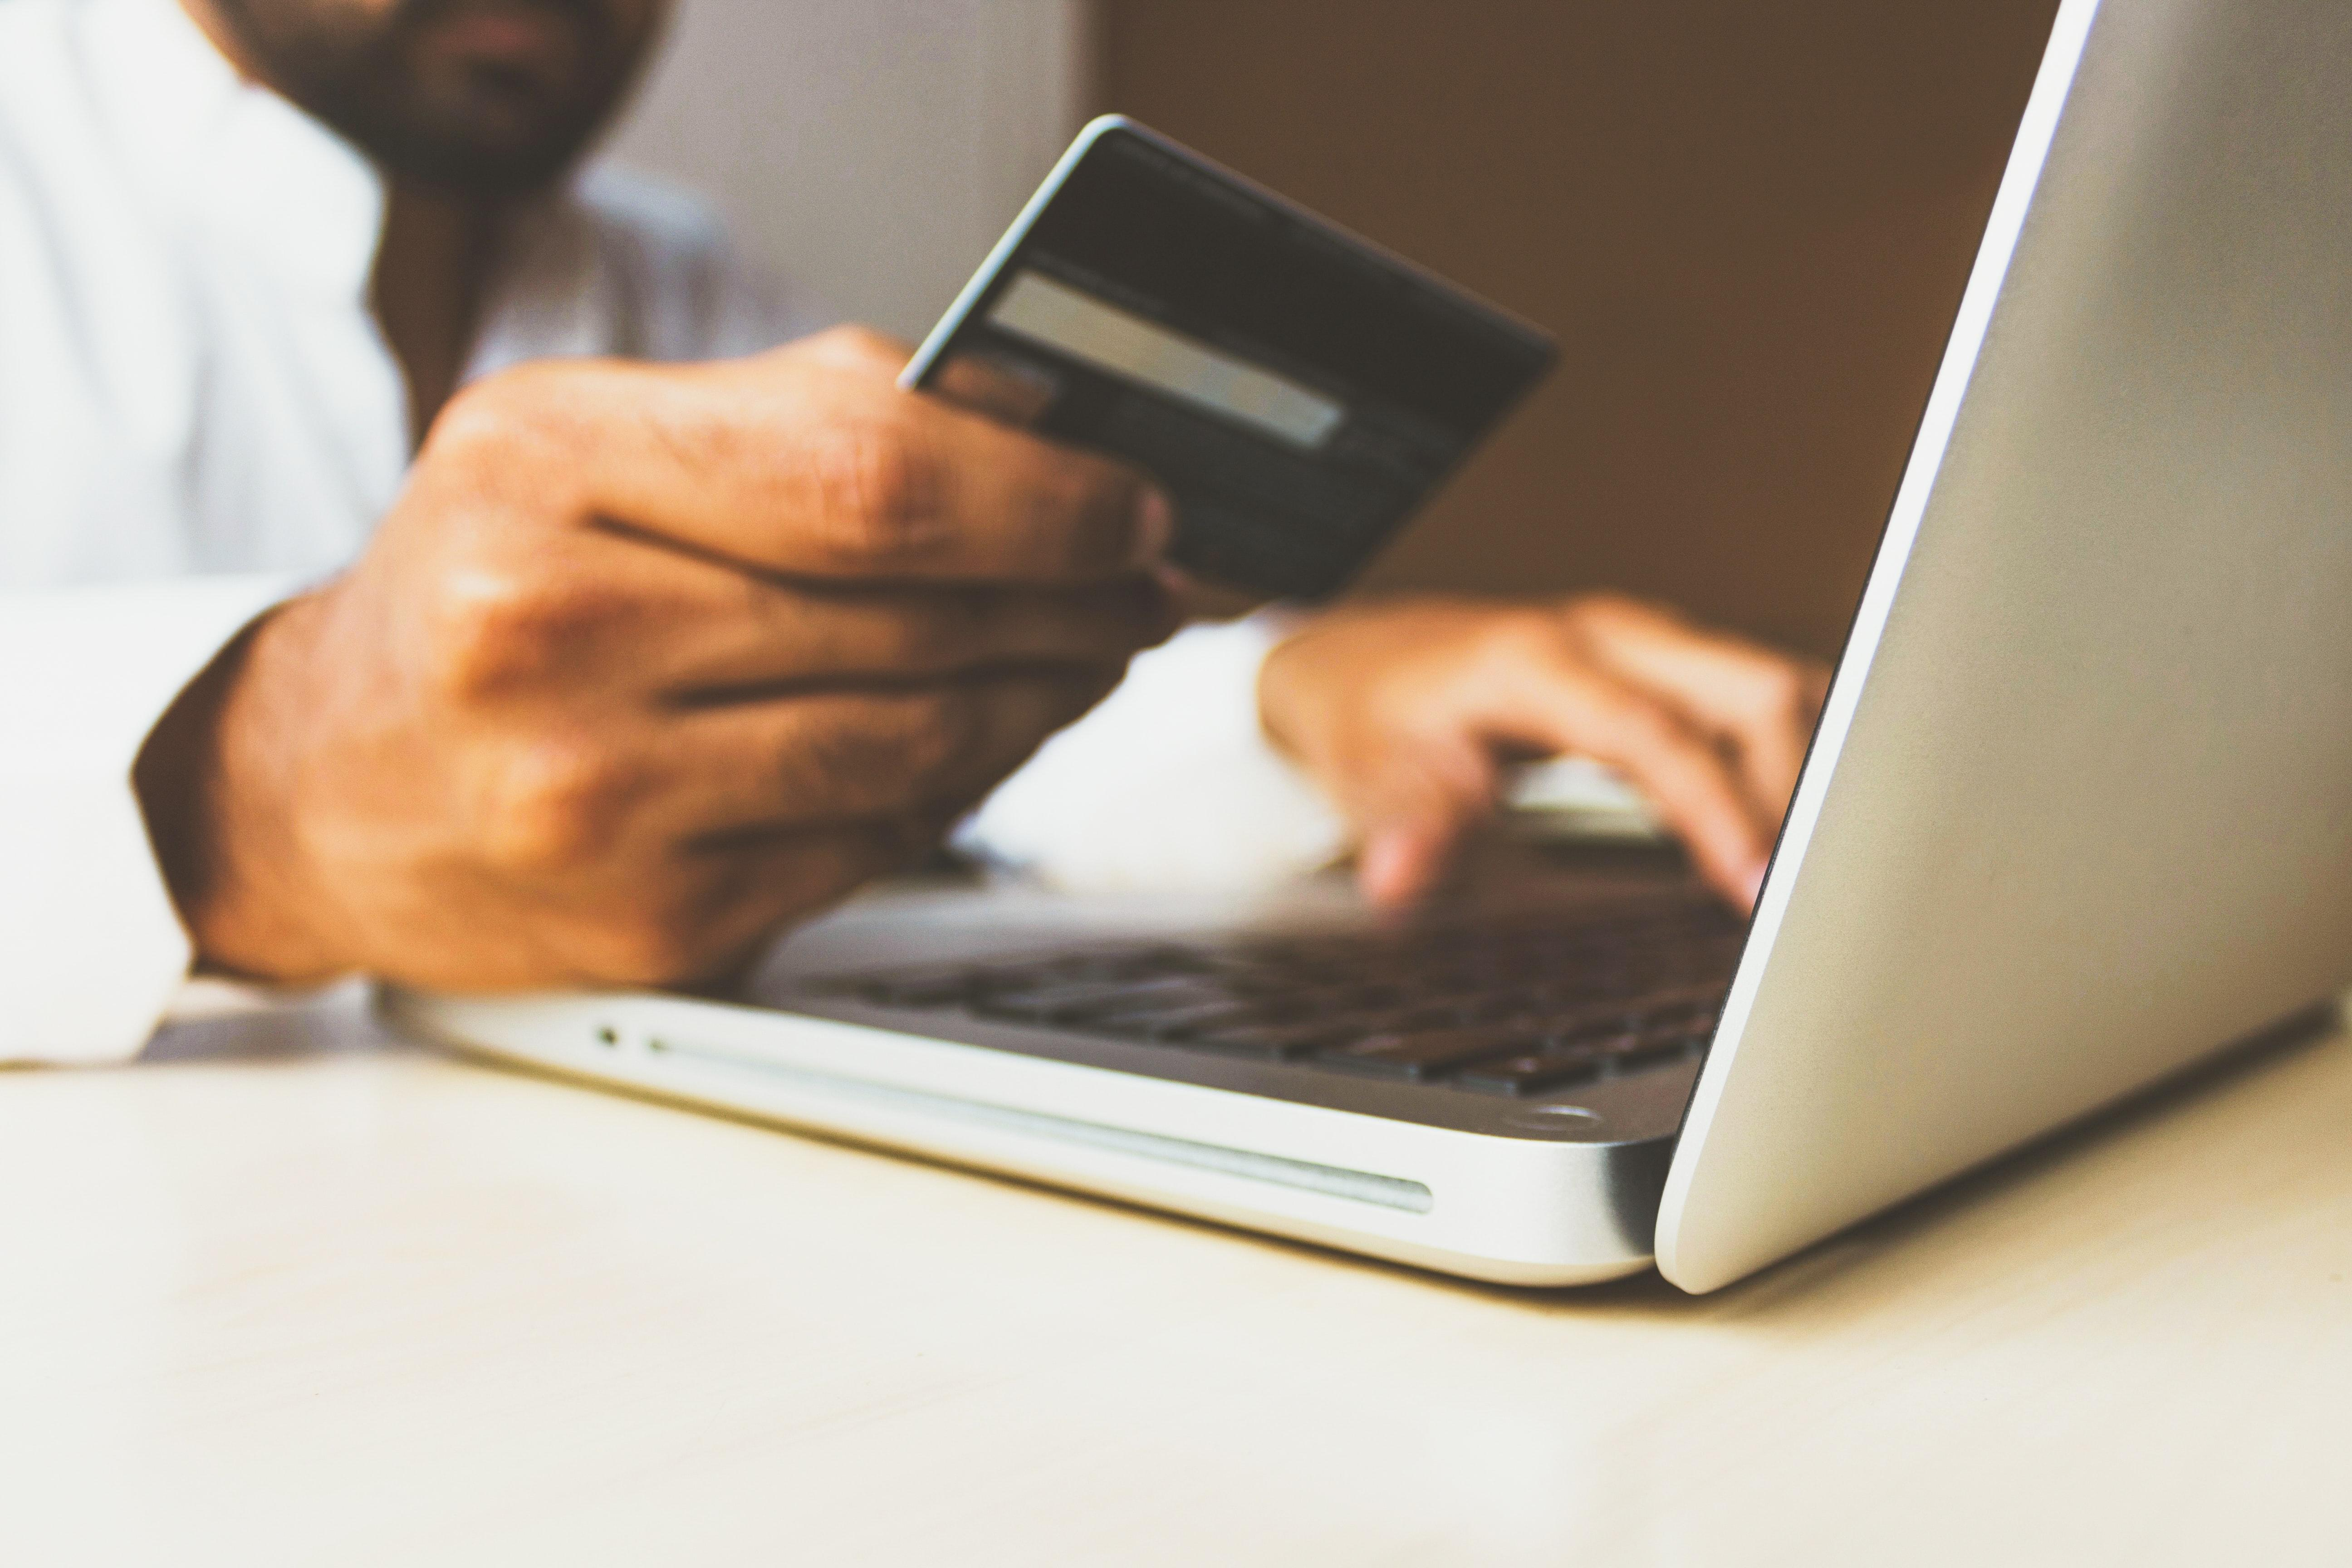 With COVID-19 Concerns, Cyber Monday Will Be Crucial For Holiday Shoppers. As You Shop, Keep These 7 Cybersecurity Tips in Mind Thumbnail